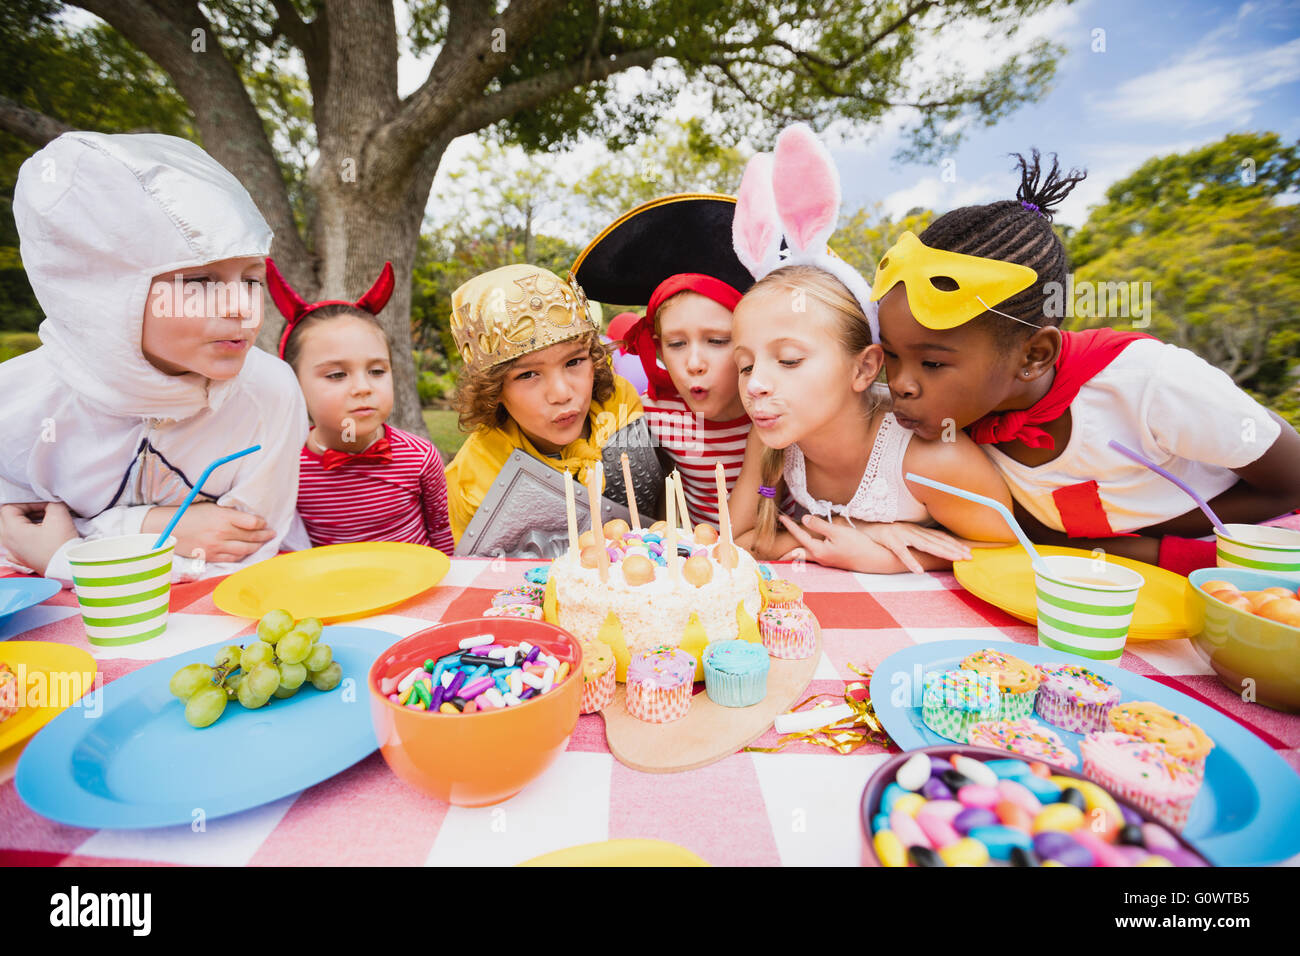 Cute children blowing together on the candle during a birthday party - Stock Image